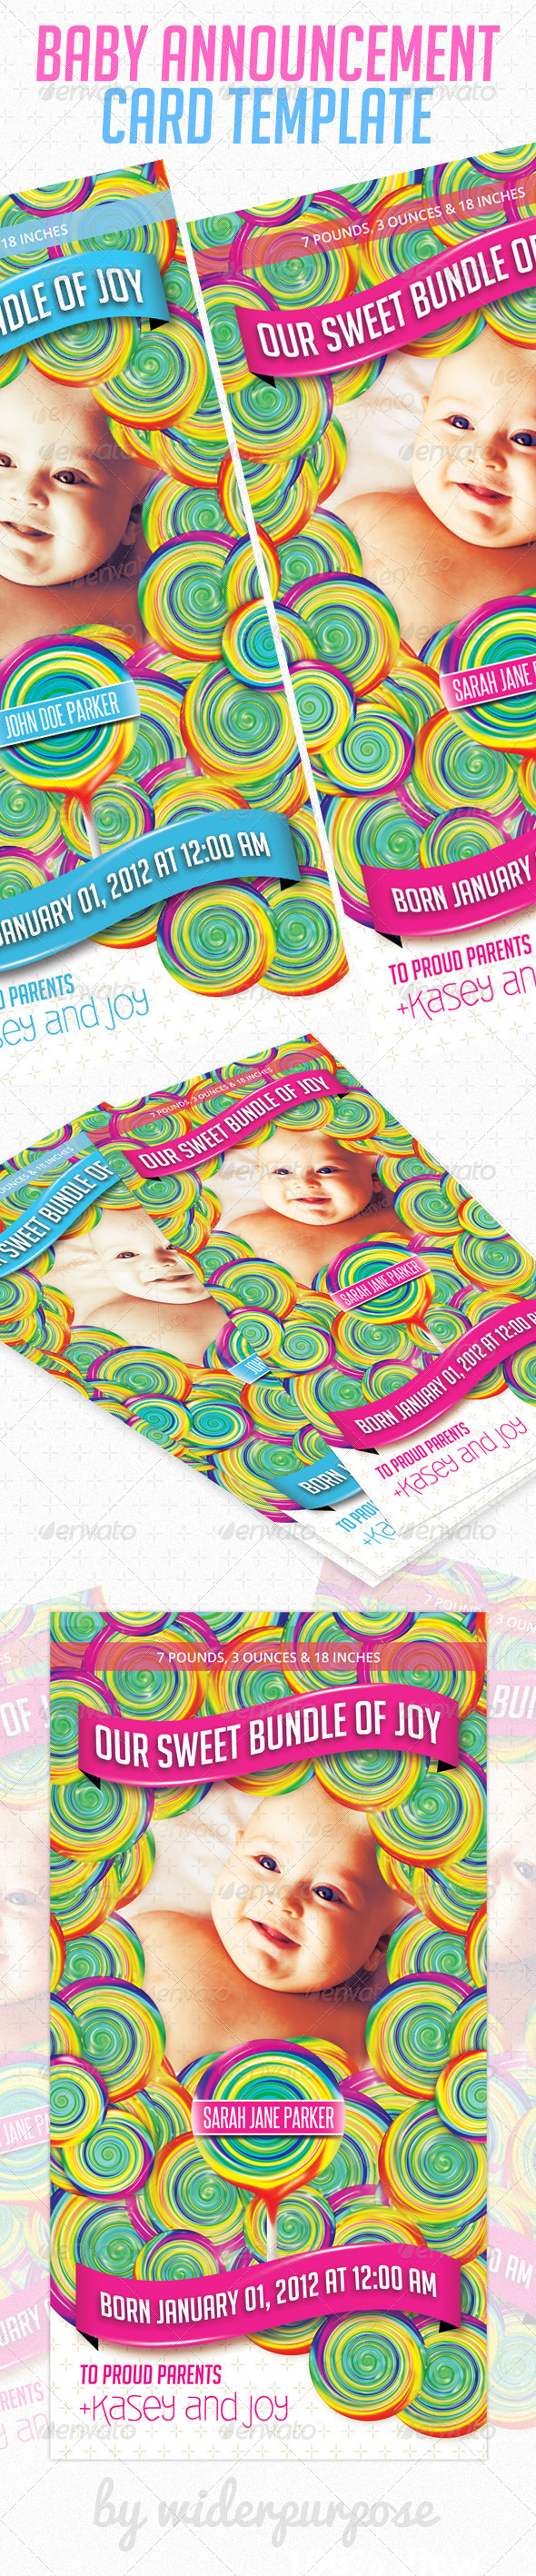 Baby Announcement Card PSD Template - Cards &amp; Invites Print Templates